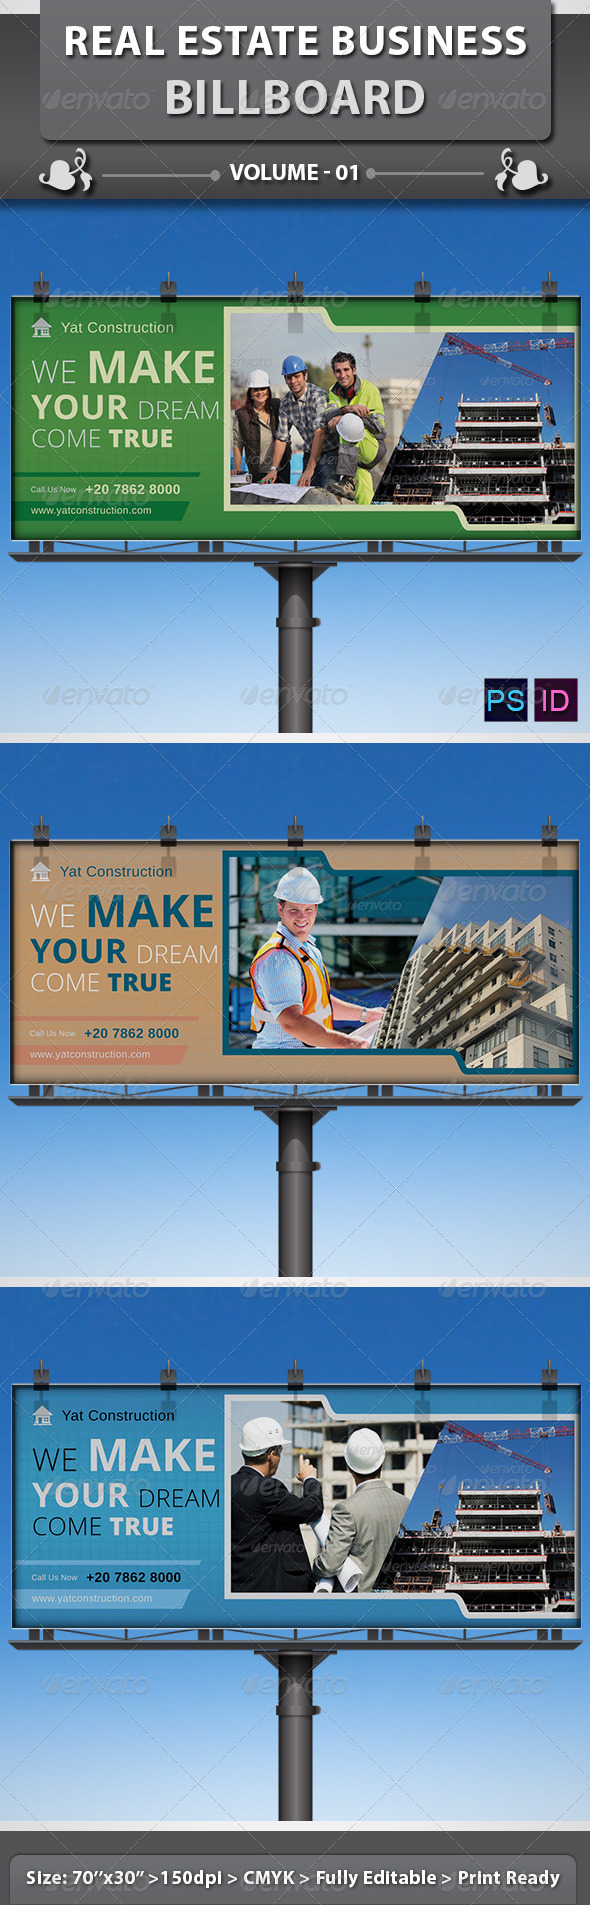 Real Estate Business Billboard | Volume 1 - Signage Print Templates